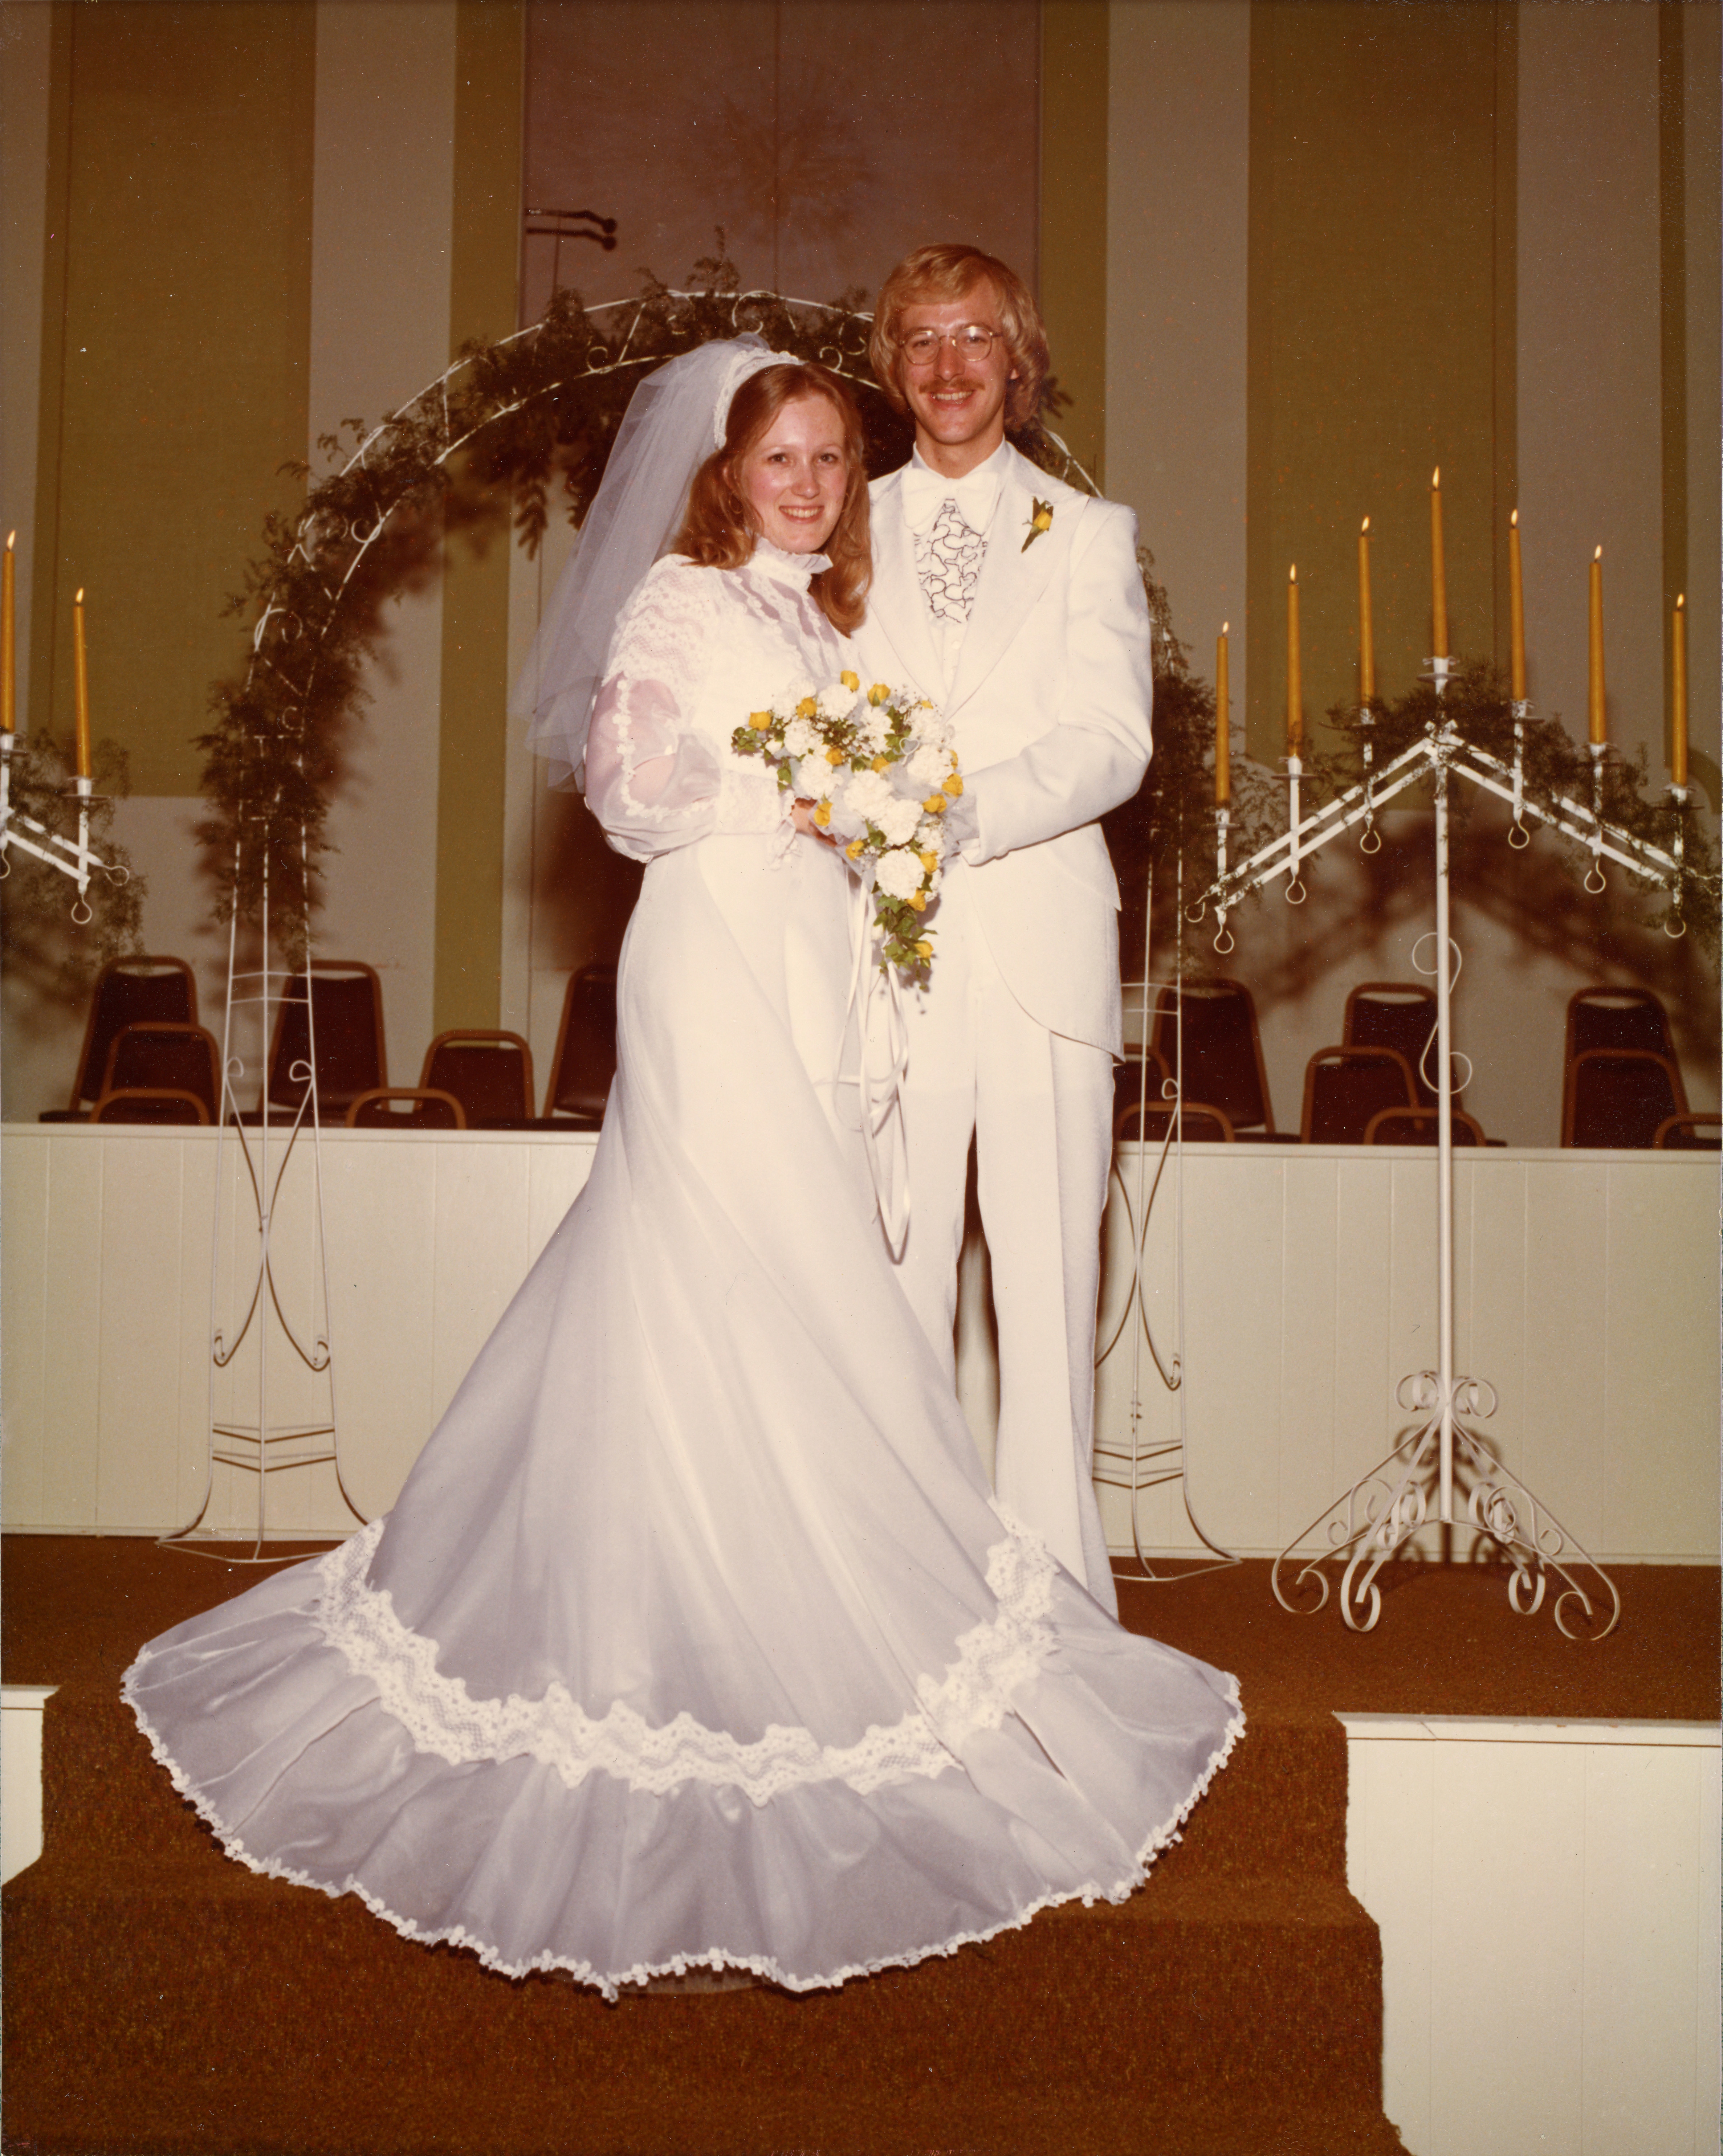 Rick and Kay Warren wedding photo as featured on the Jesus Calling podcast